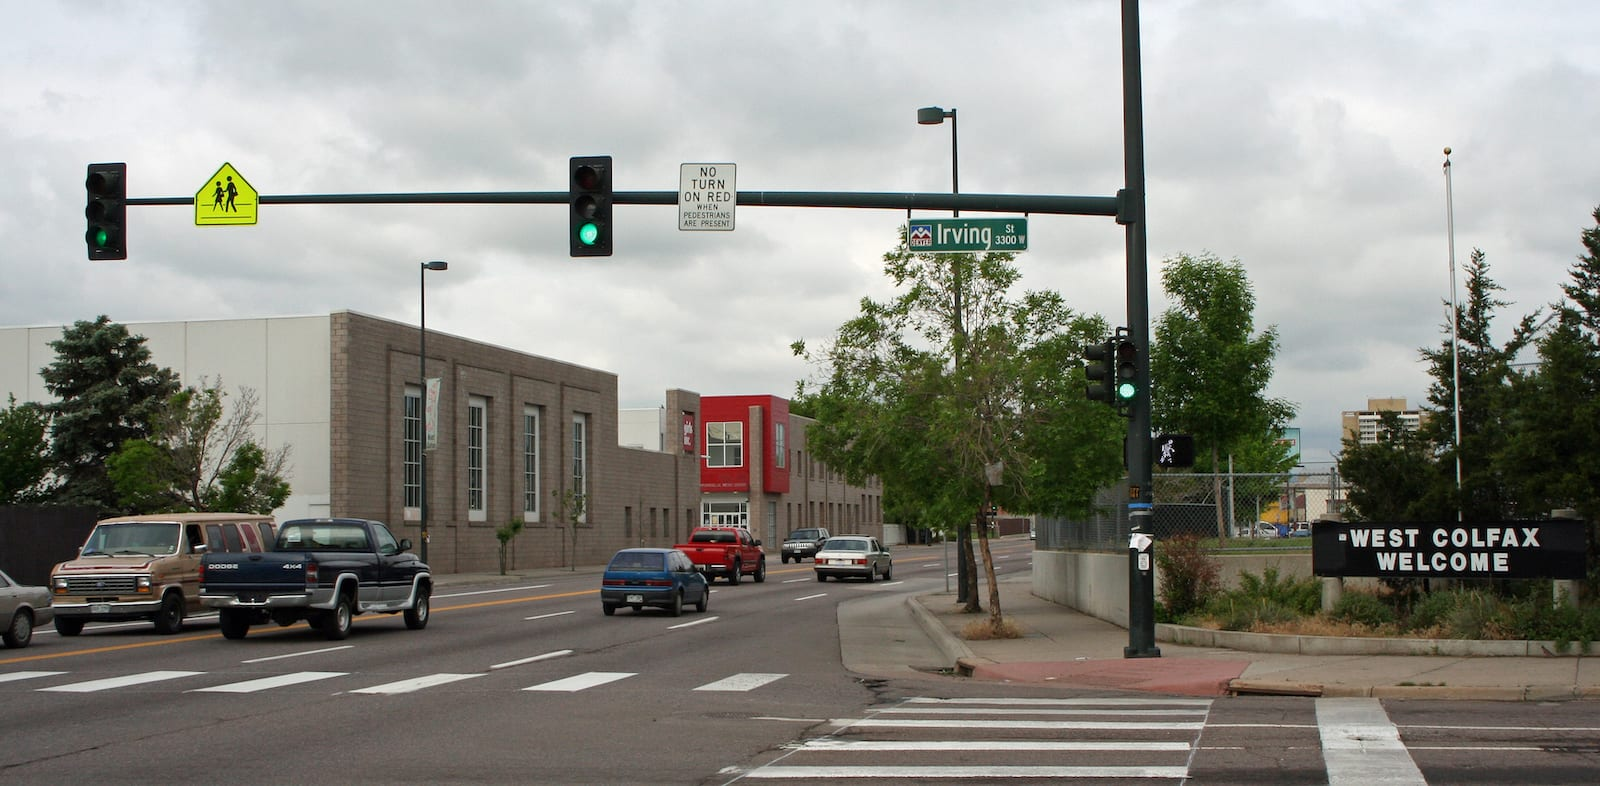 West Colfax Welcome Sign Irving Street